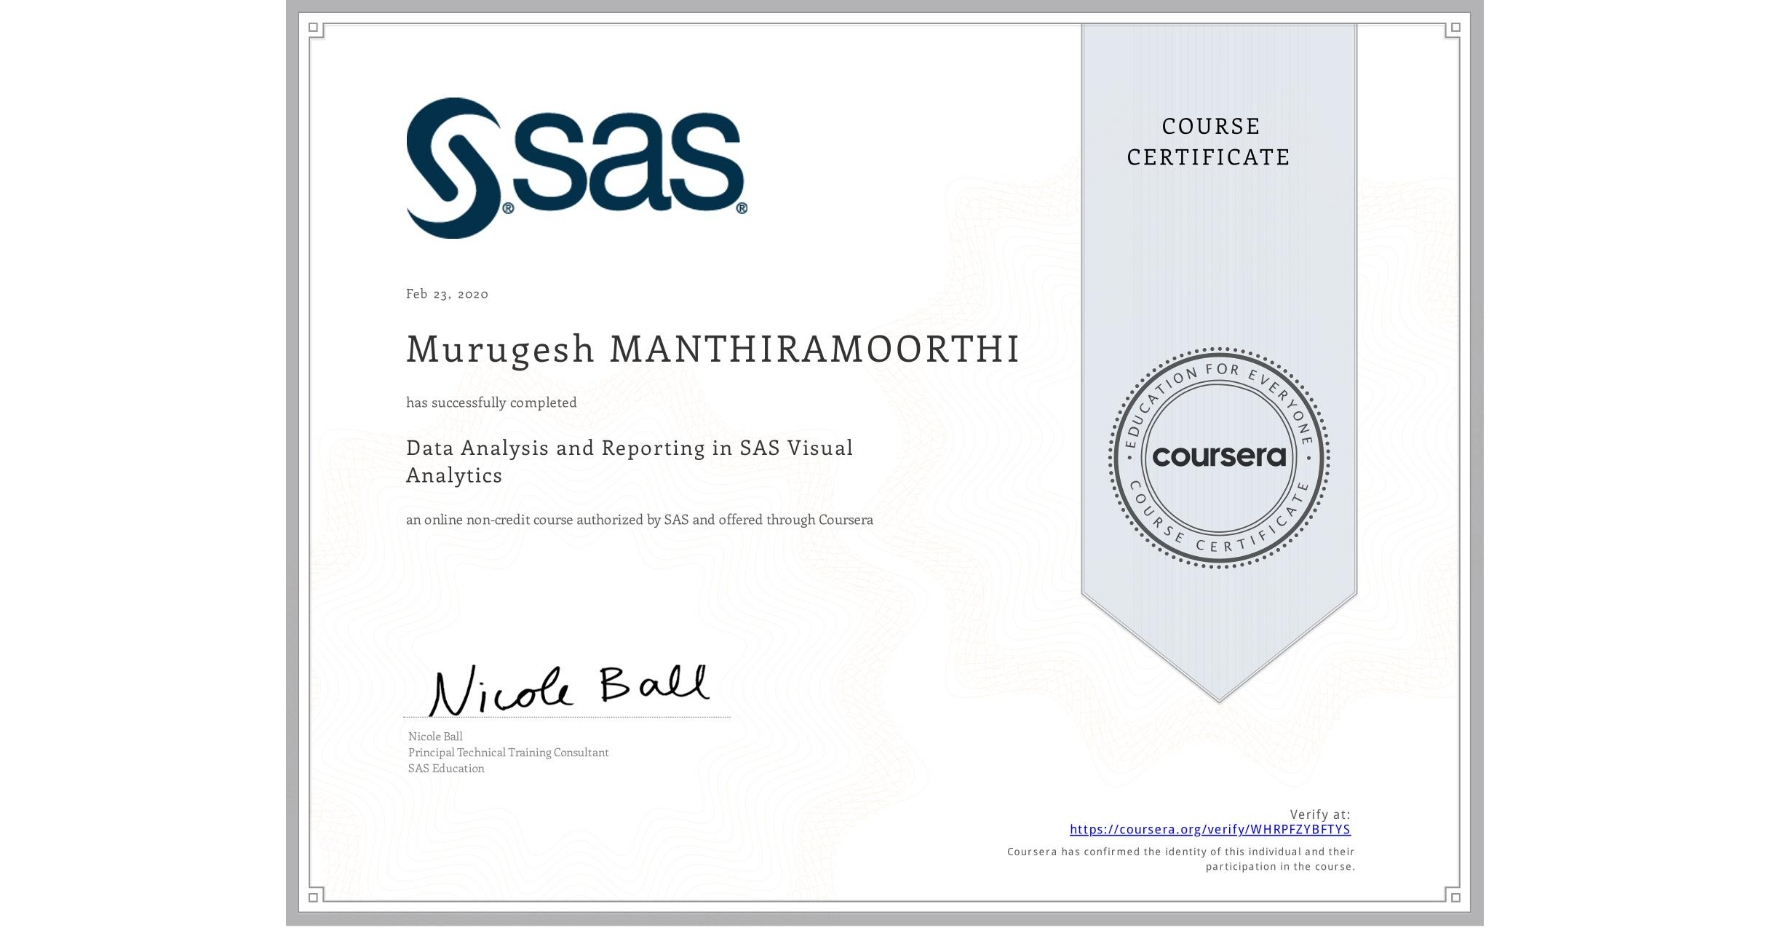 View certificate for Murugesh Manthiramoorthi, Data Analysis and Reporting in SAS Visual Analytics, an online non-credit course authorized by SAS and offered through Coursera